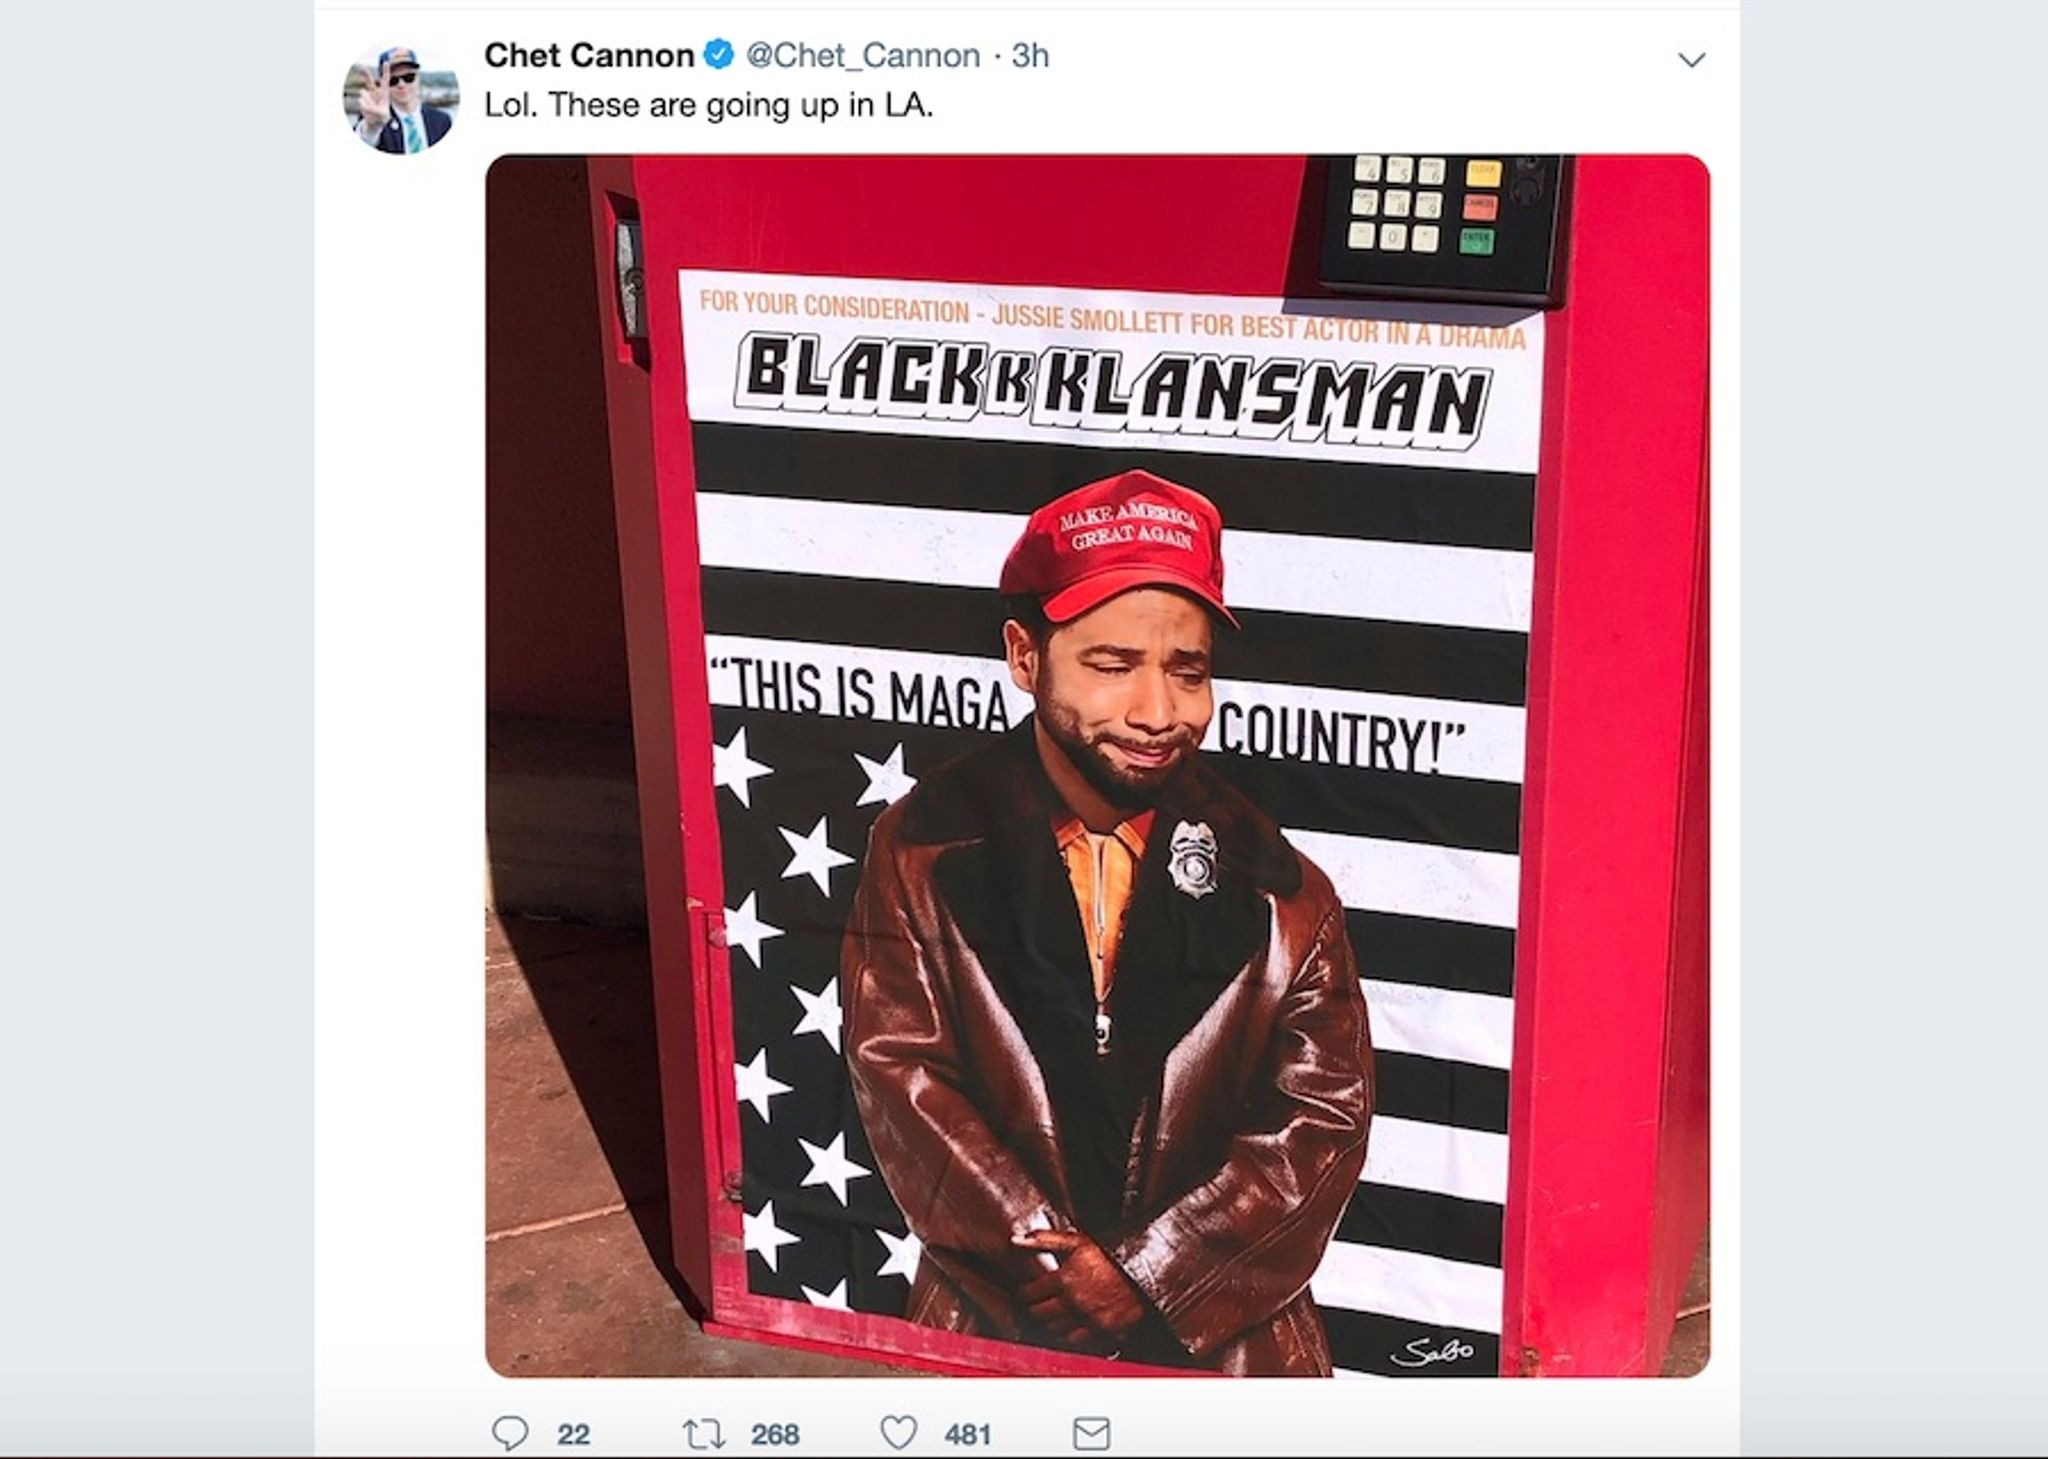 Jussie Smollett's 'MAGA country' attack story lampooned as Oscar-worthy in L.A. street art